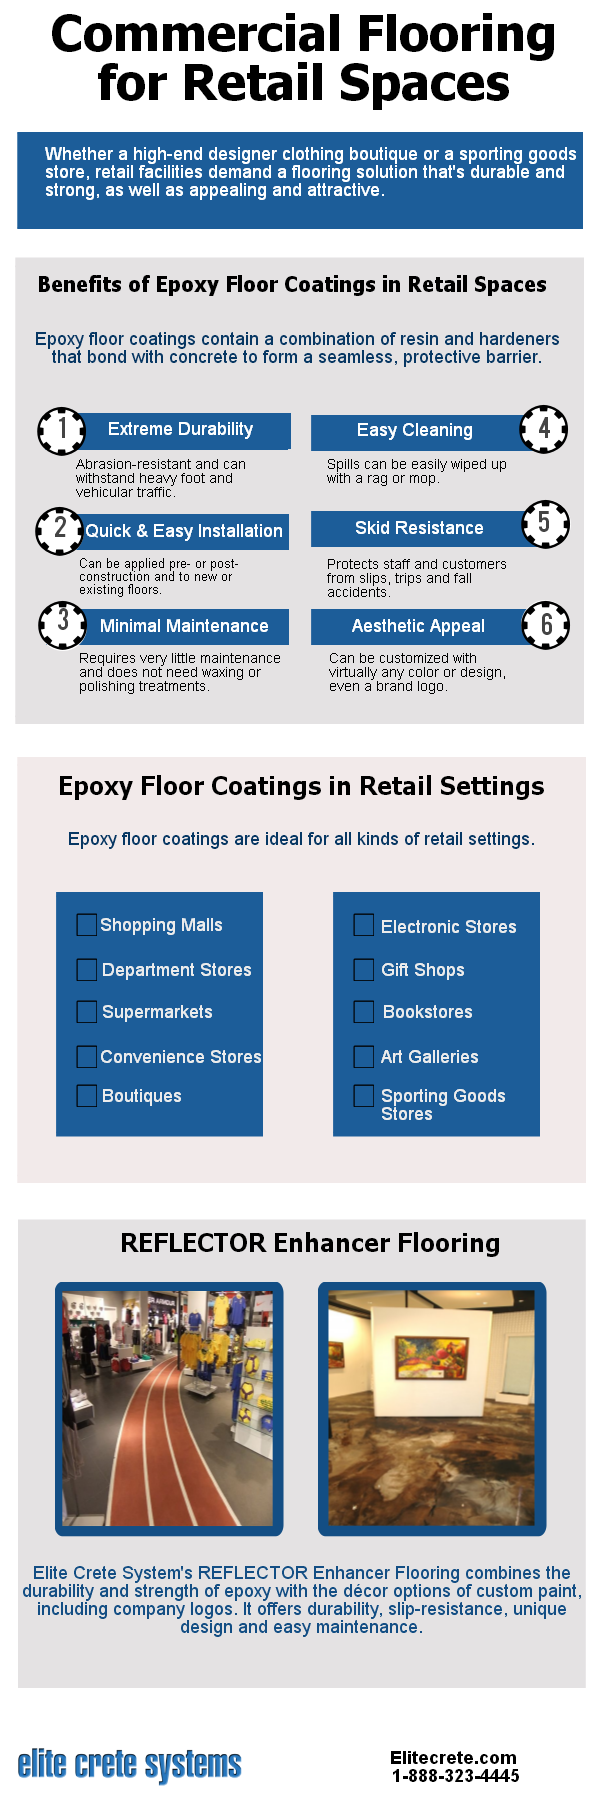 Infographic Commercial Flooring for Retail Spaces Elite